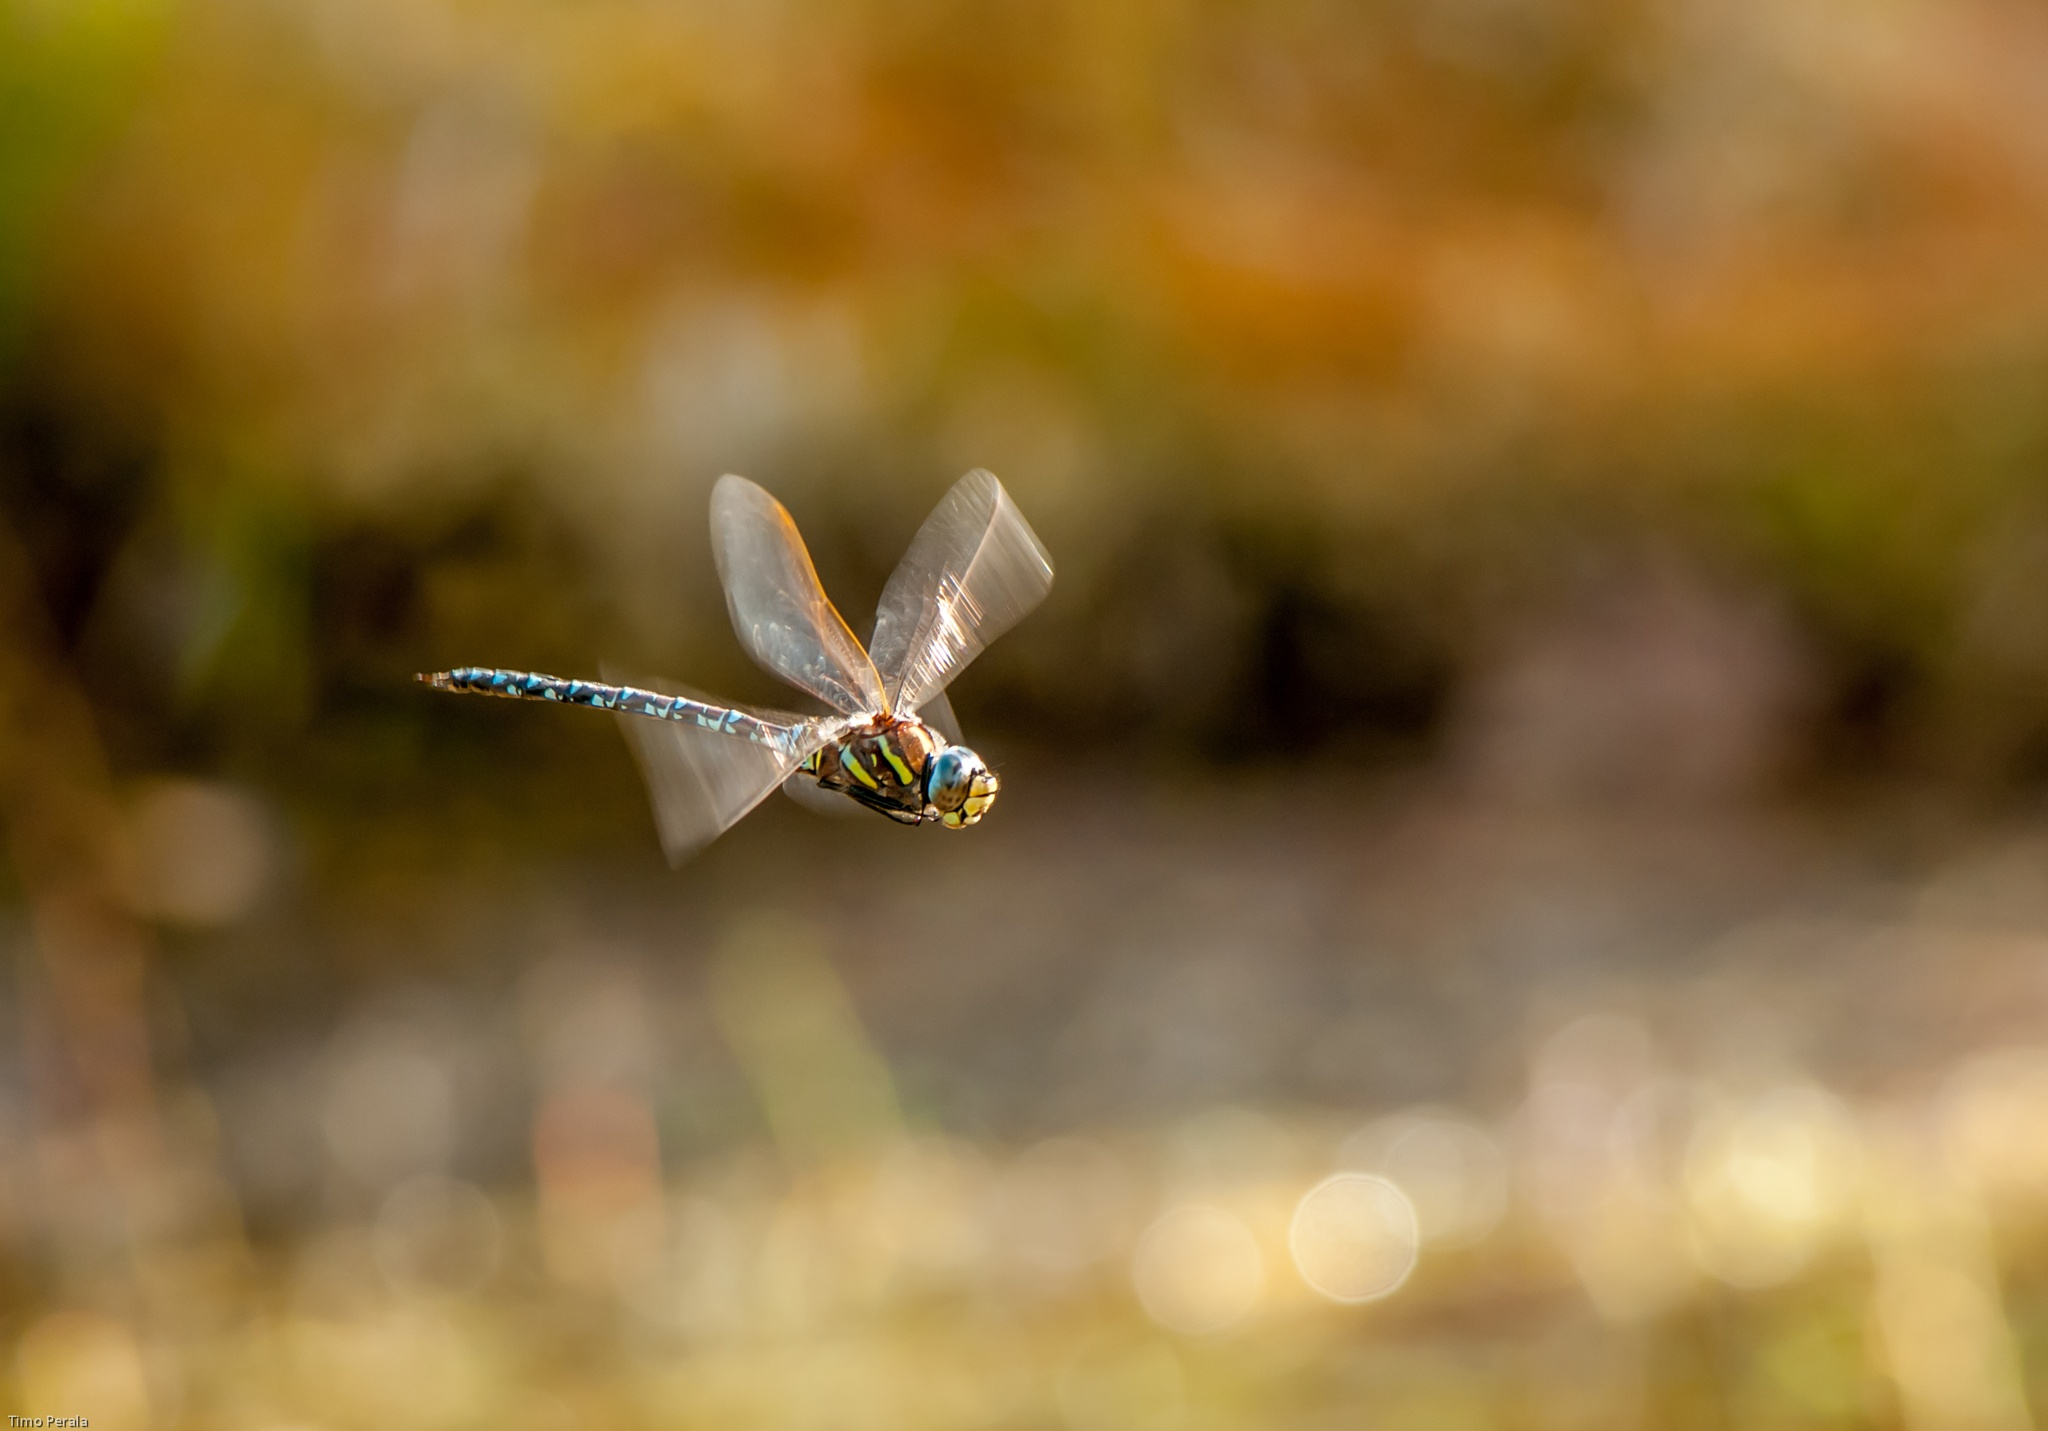 Dragonfly by Timo Perala